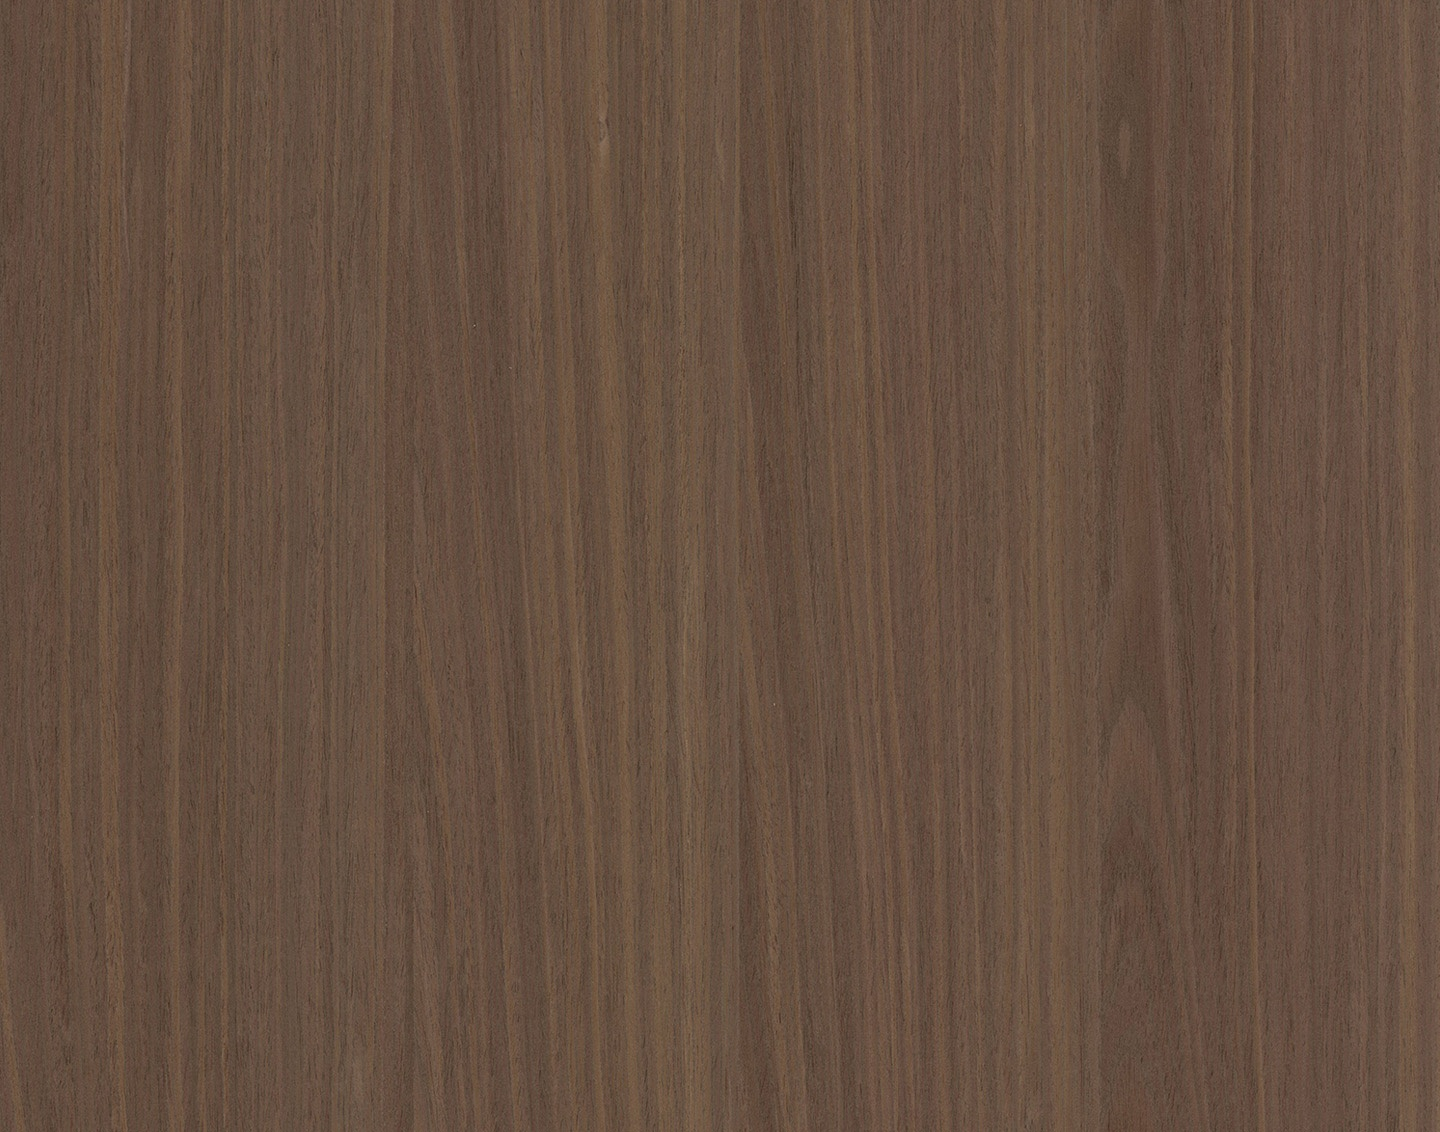 ALPI Xilo 2.0 Walnut Planked